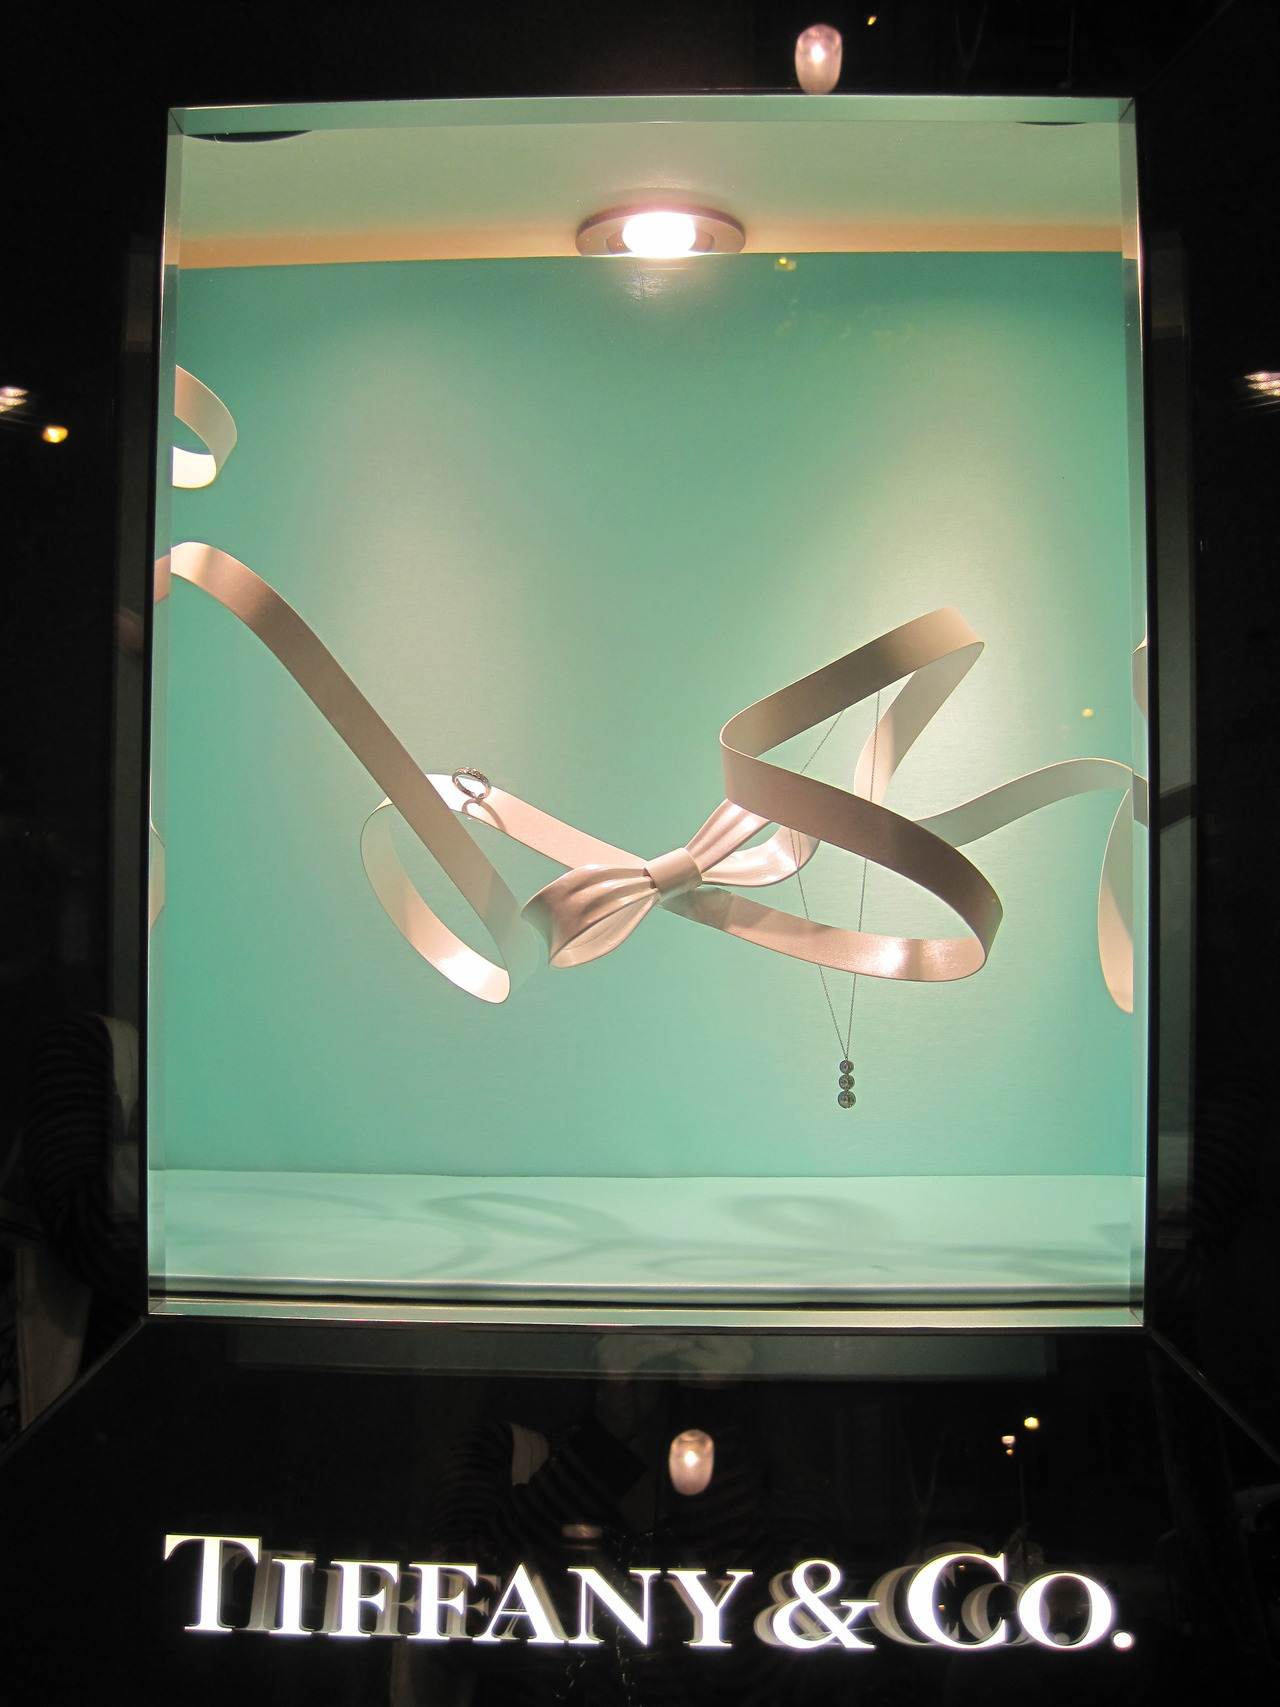 Tiffany & Co jewelry display window and visual merchandising setting seen in Barcelona.